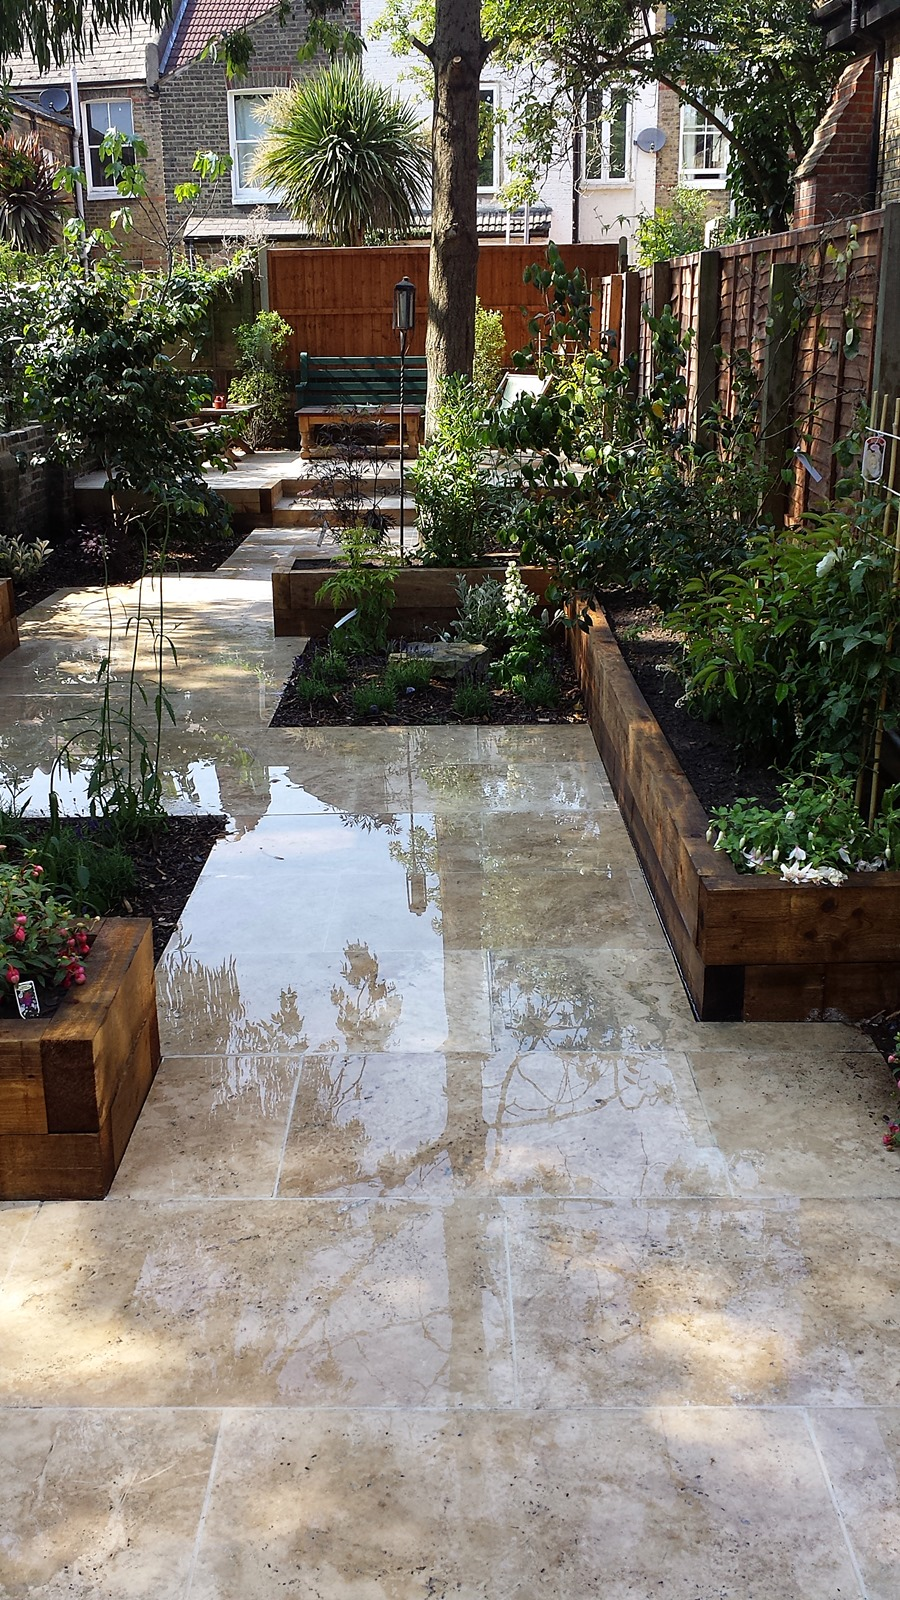 Travertine Paving Patio Modern Garden Design Landscaping ... on Backyard Patio Layout id=88542